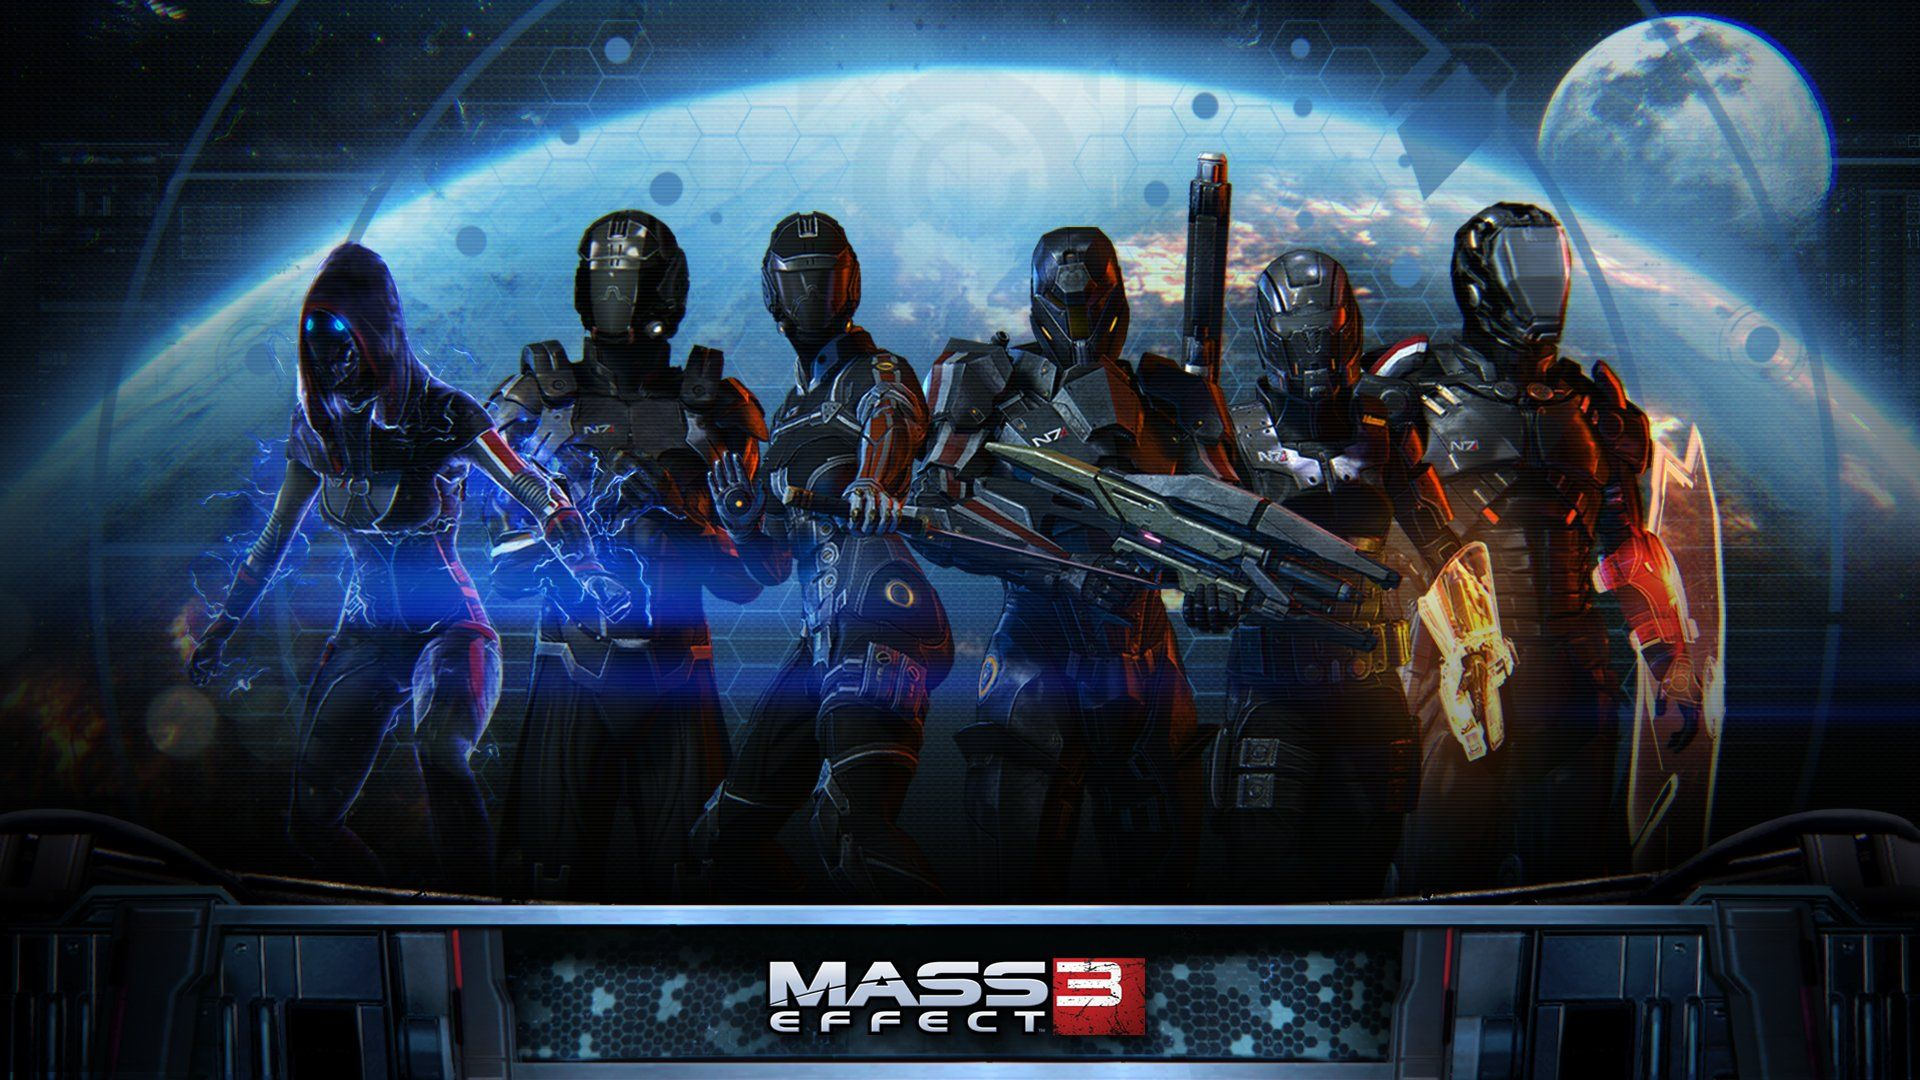 1920x1080 Mass Effect 3 Wallpaper Background Image View Download